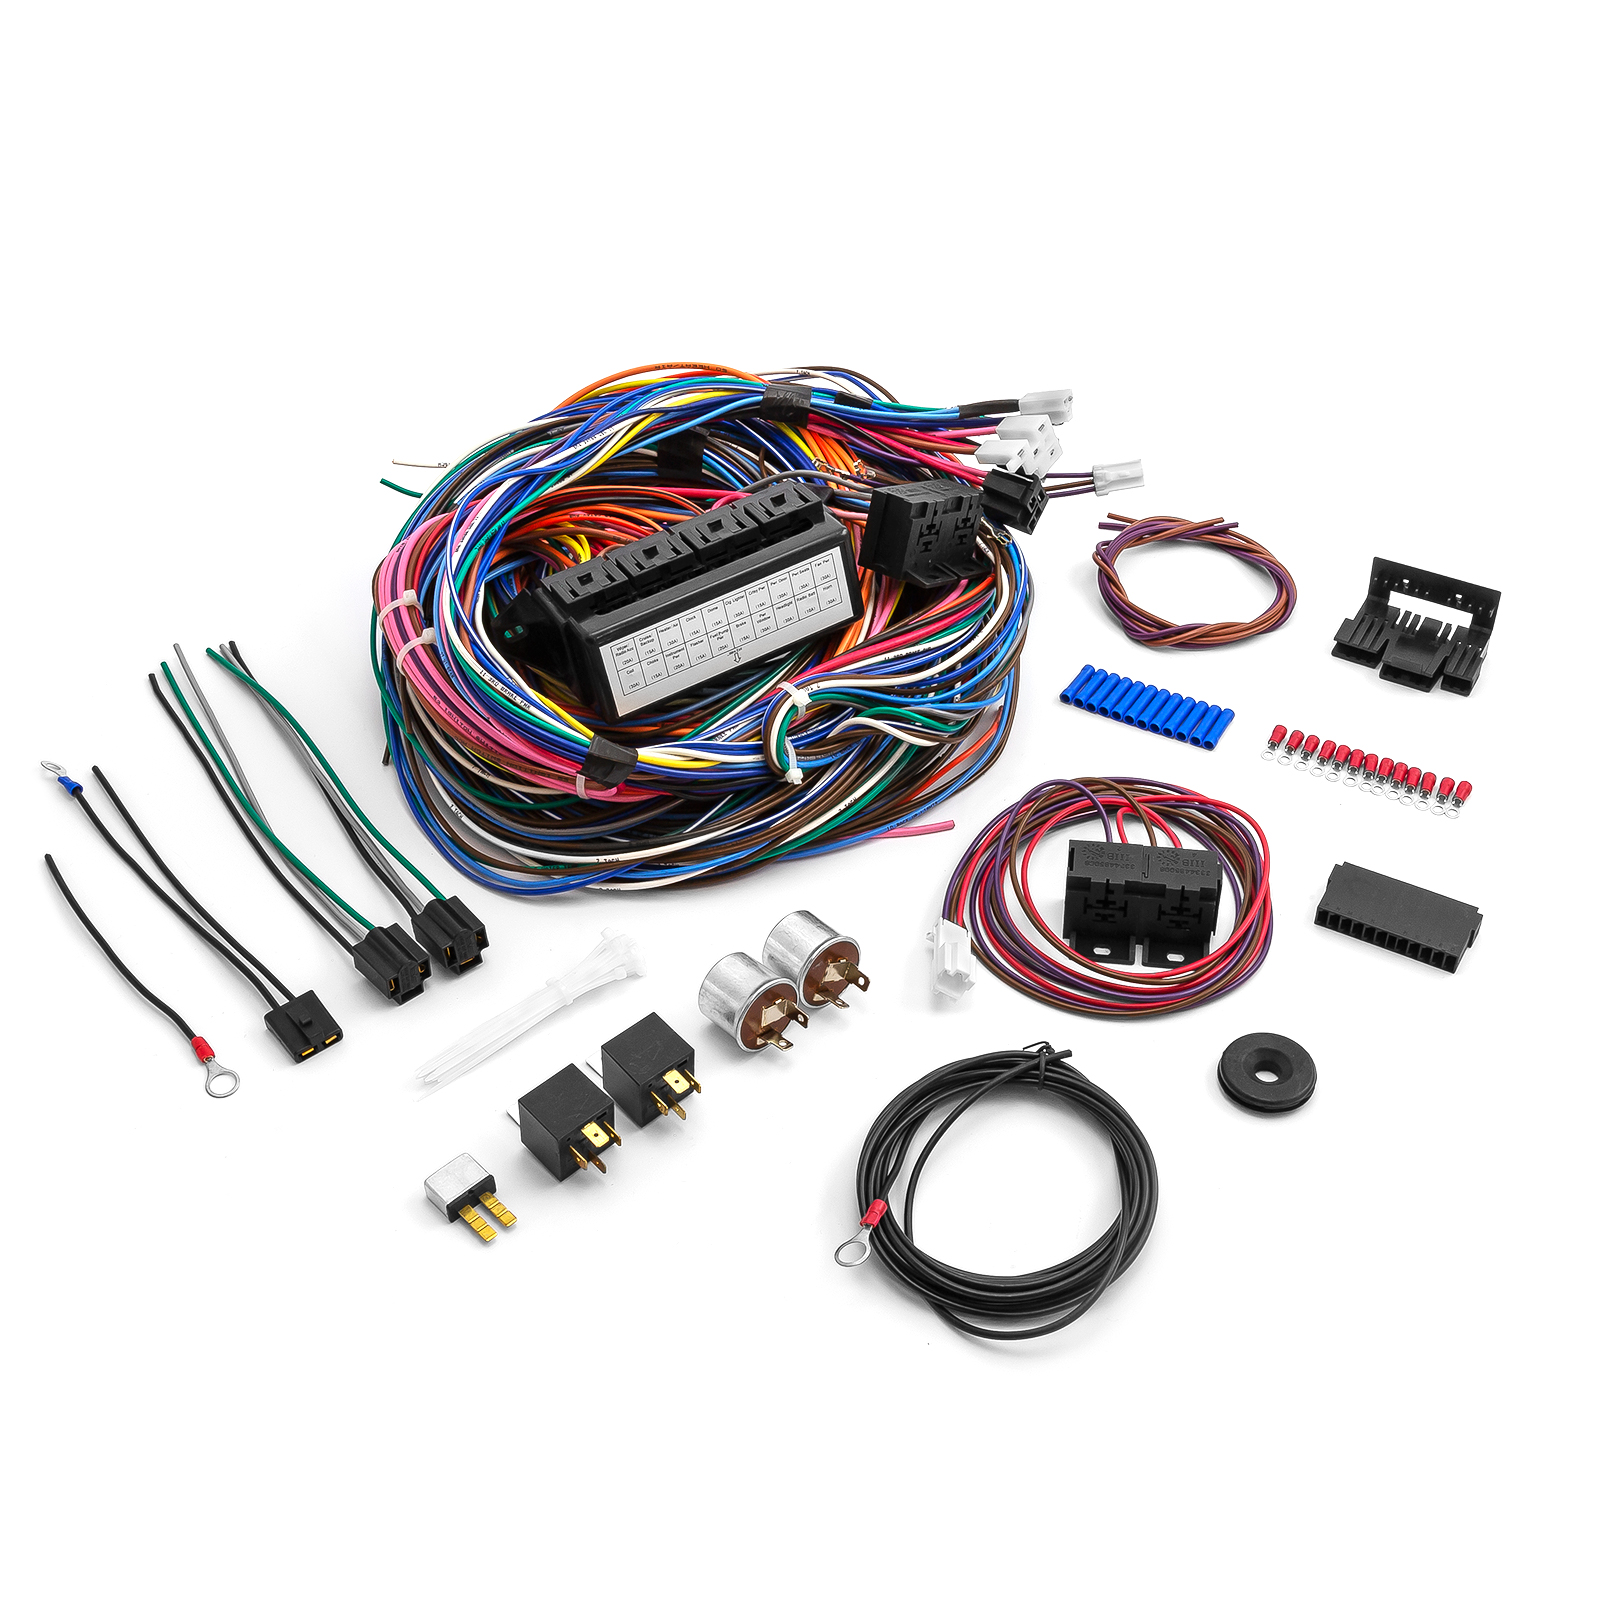 hight resolution of universal 20 circuit wiring harness kit street rod hot rod race car